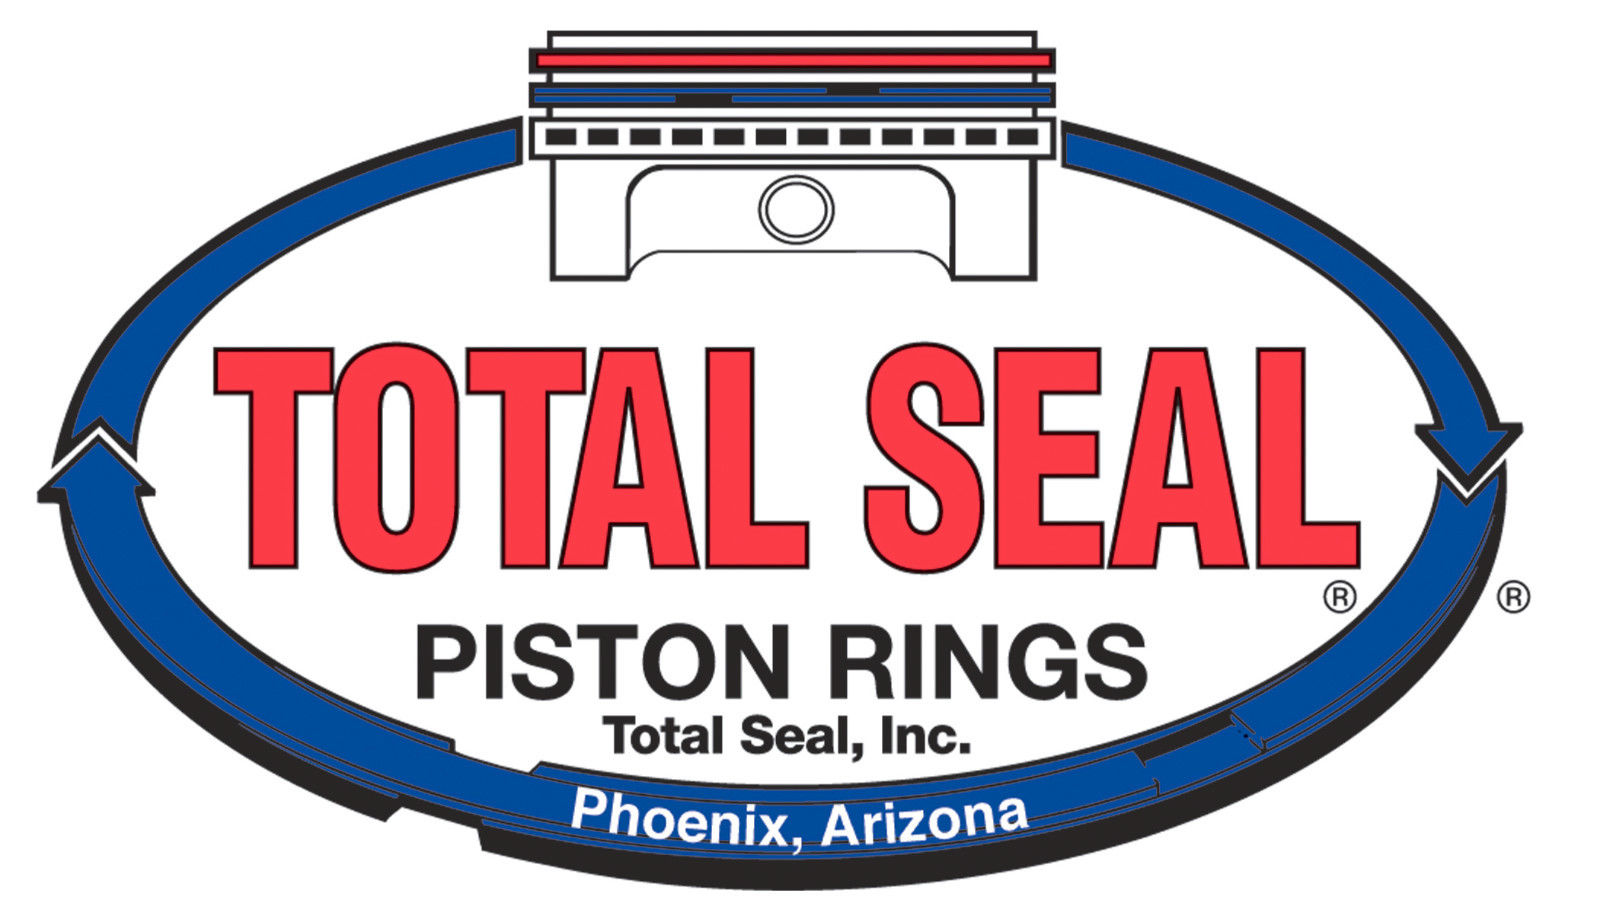 Total Seal CR3690-5 Classic Race Rings 4.000